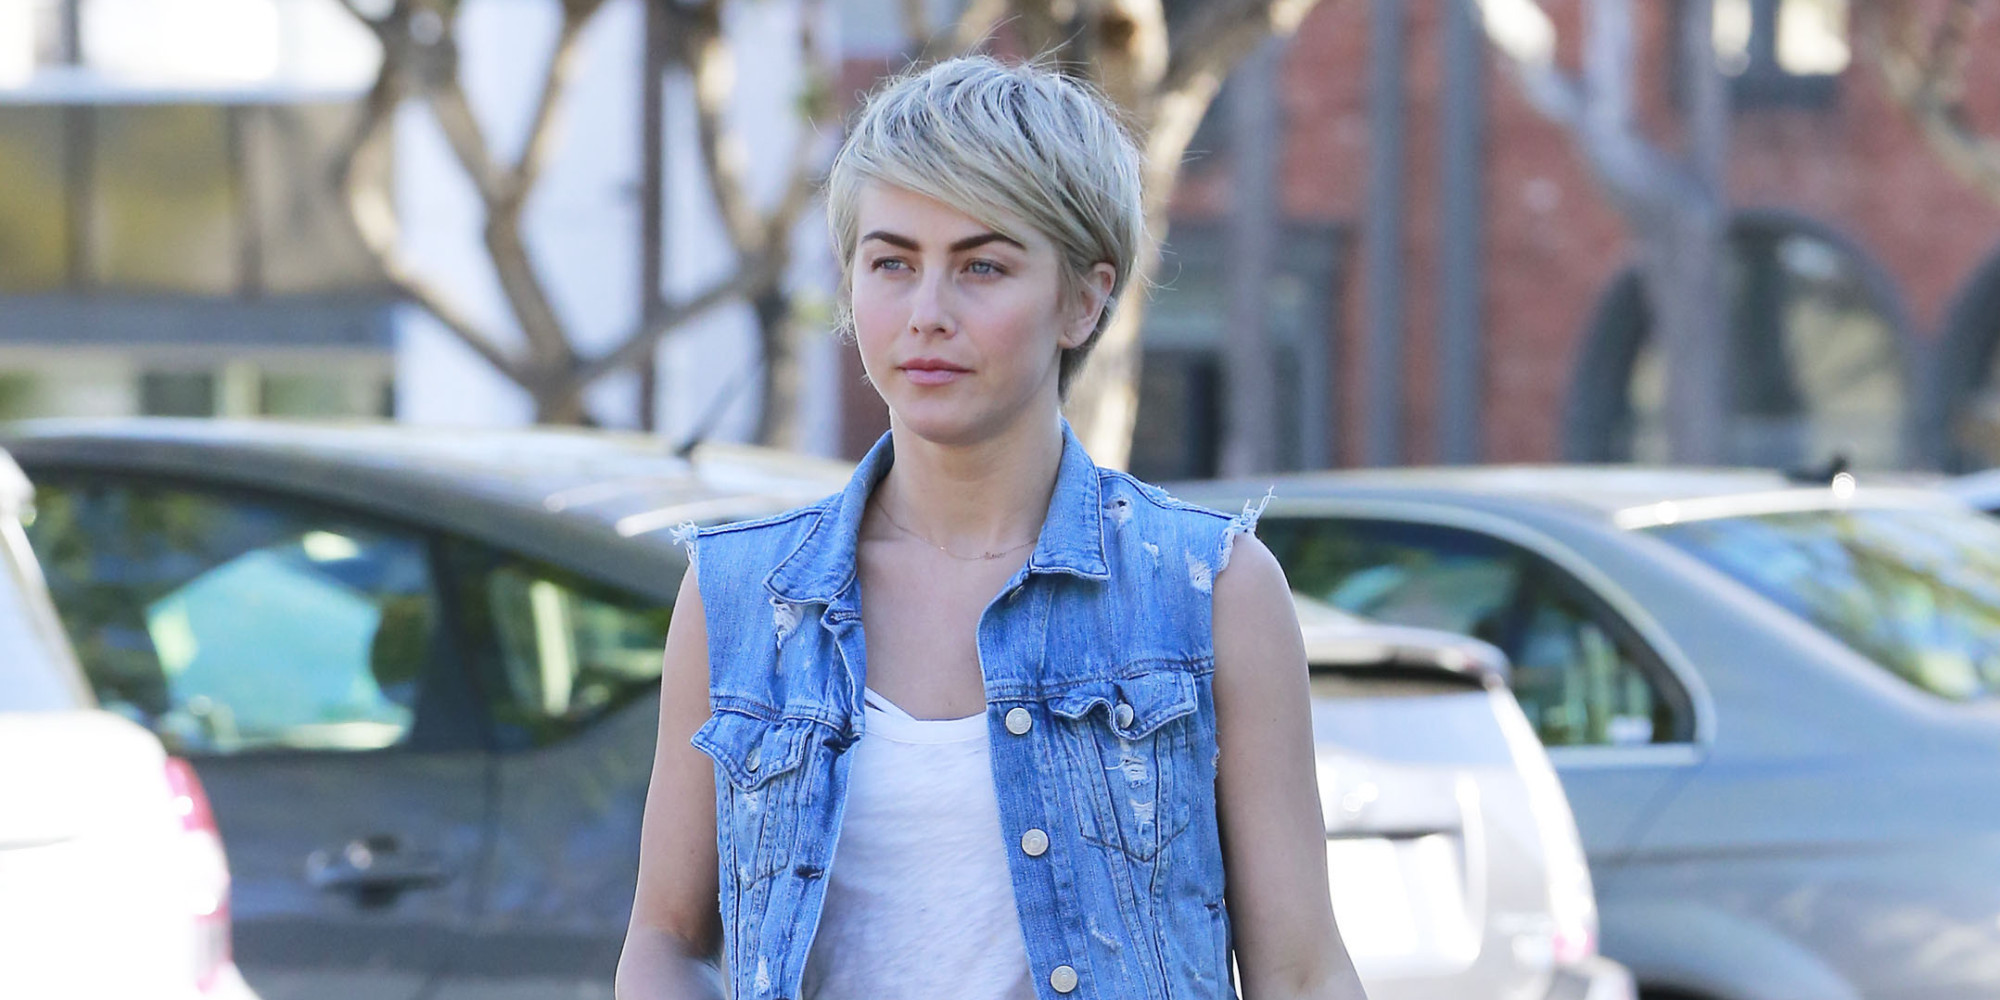 Julianne Hough Whips Out Her Short Shorts Just In Time For Spring Huffpost